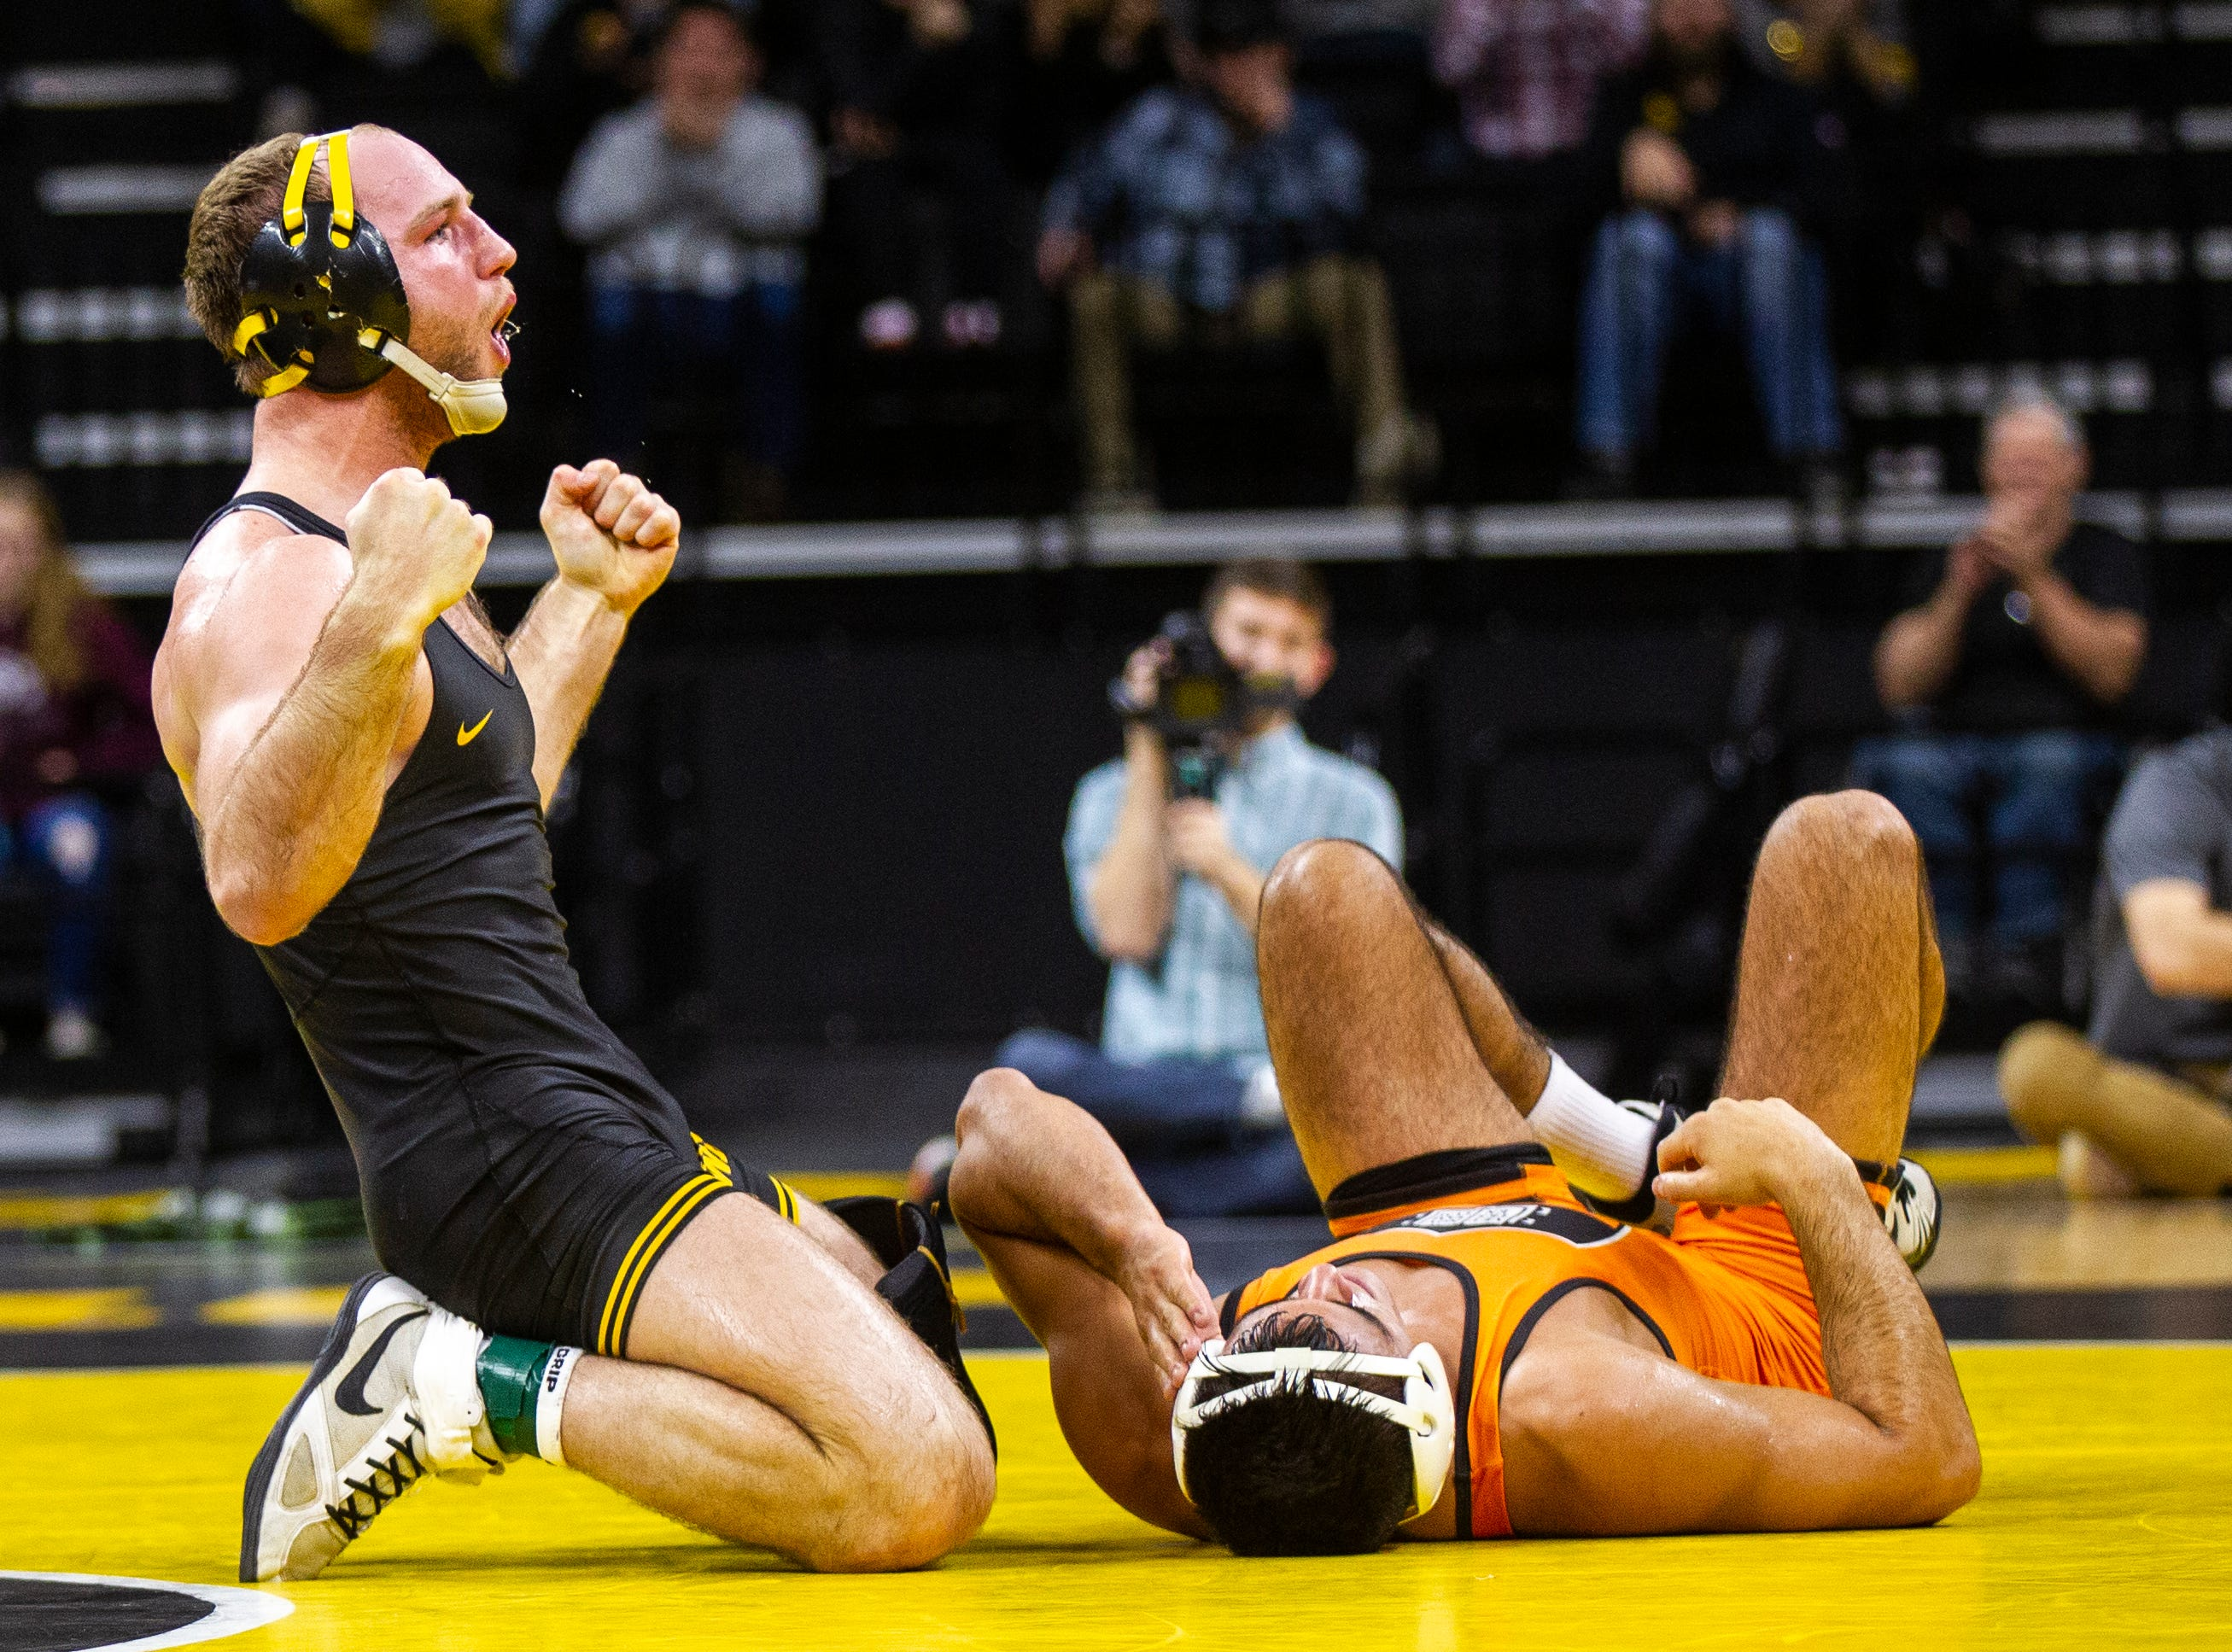 Iowa's Alex Marinelli celebrates after pinning Princeton's Dale Tiongson at 165 during an NCAA wrestle dual on Friday, Nov. 16, 2018, at Carver-Hawkeye Arena in Iowa City.